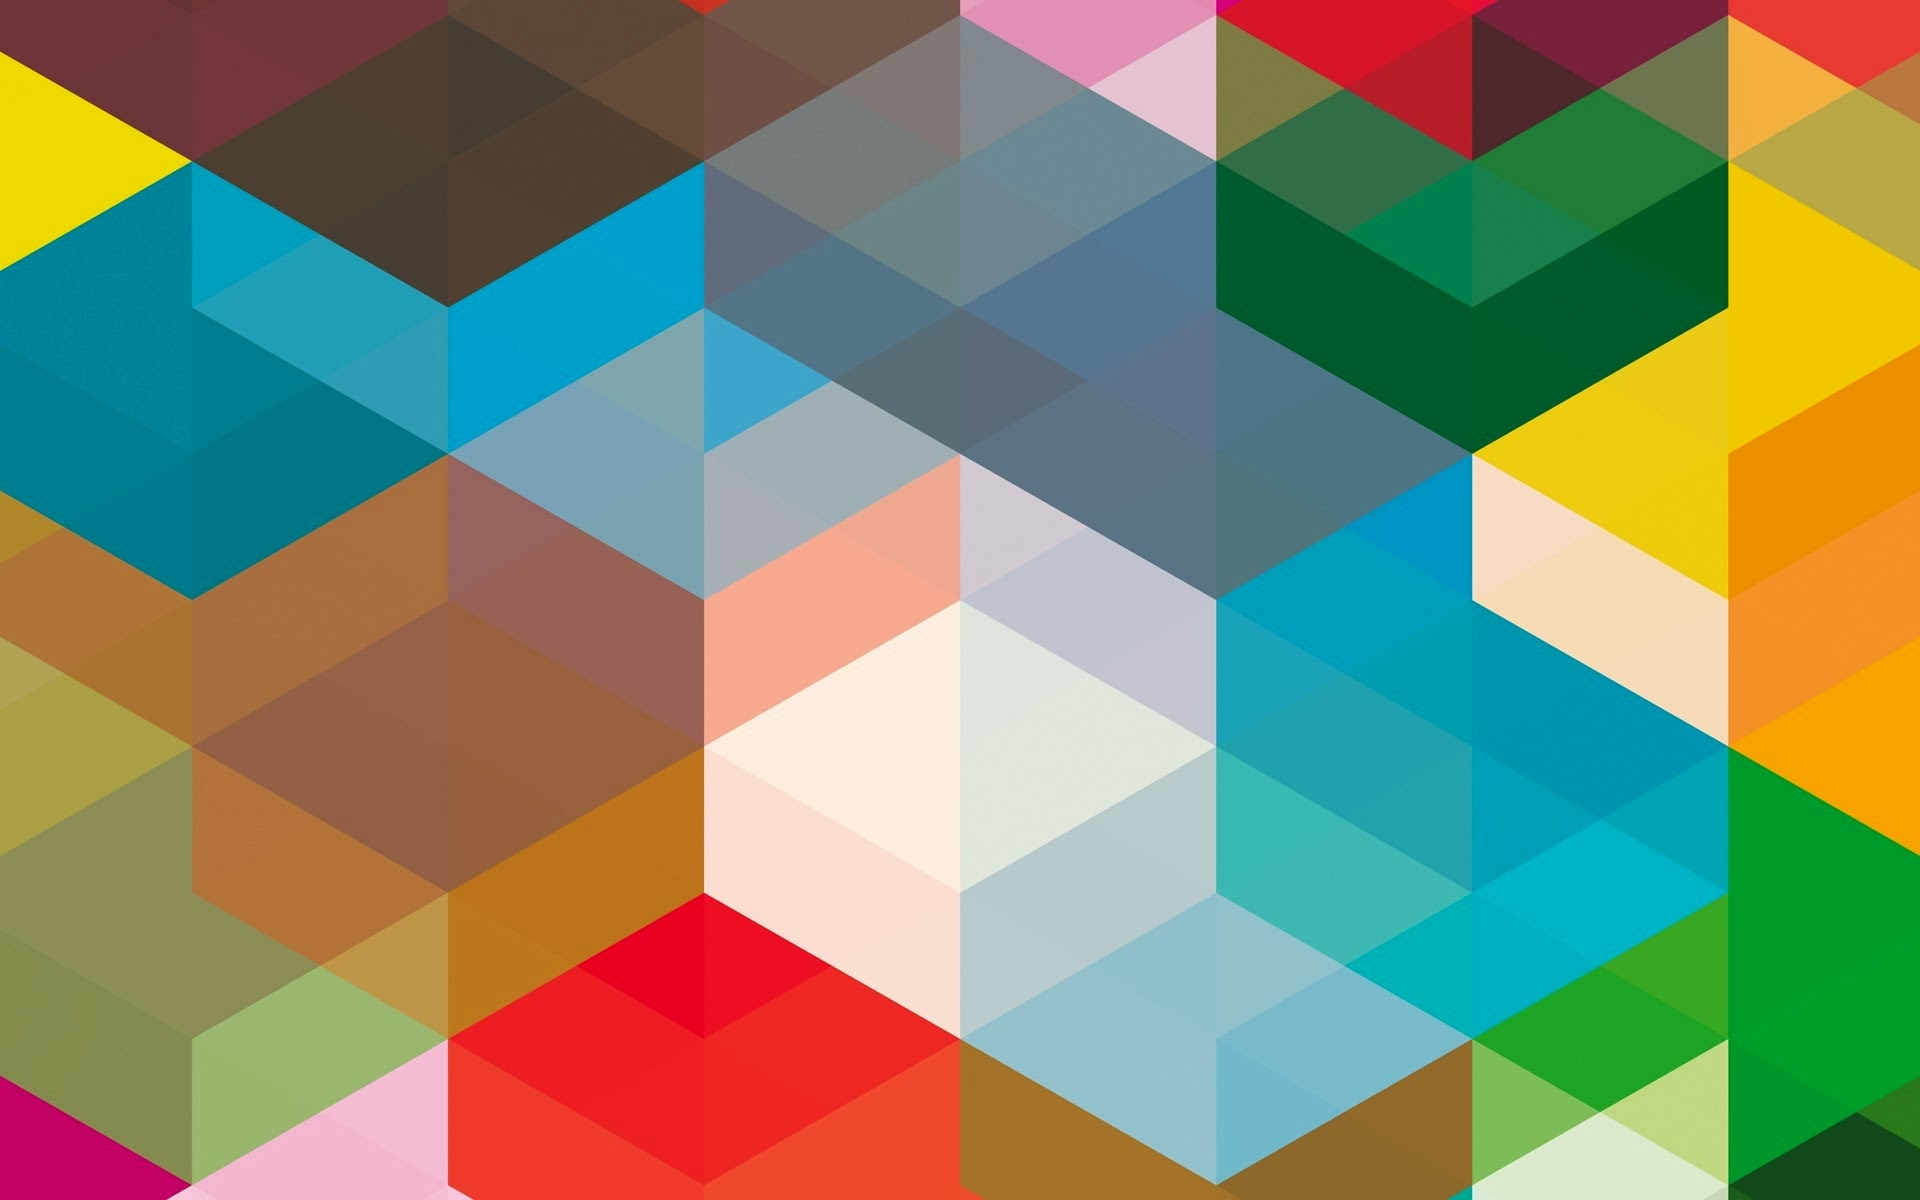 20 Best Material Design HD Wallpapers and Images Free Download